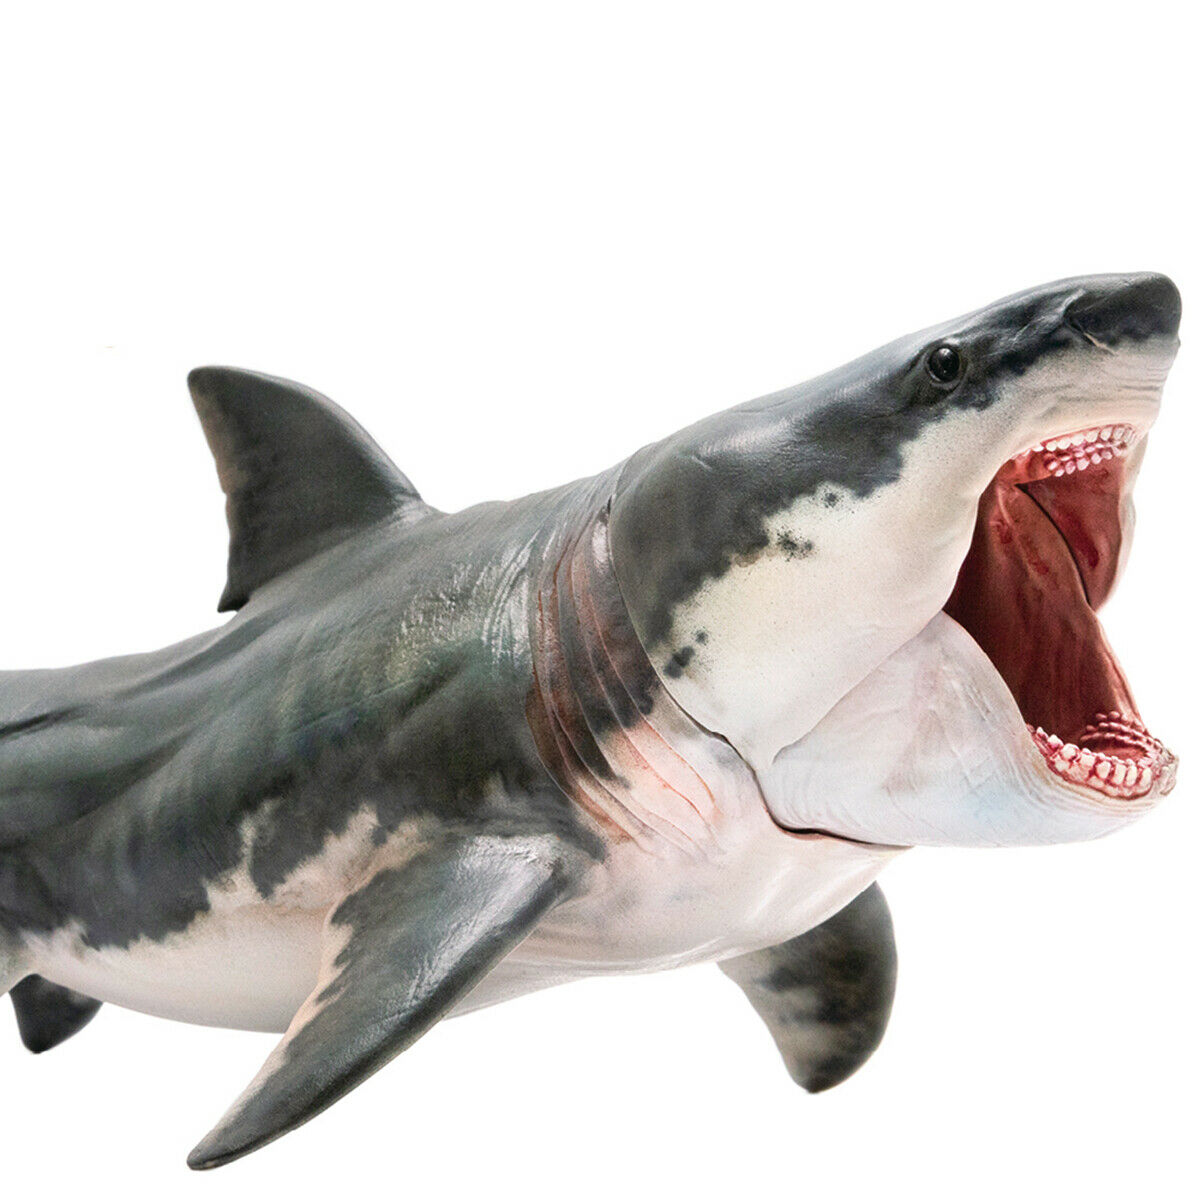 Science-Education-Toys Shark Animal Prehistoric-Ocean Megalodon Adult Gift PNSO Action